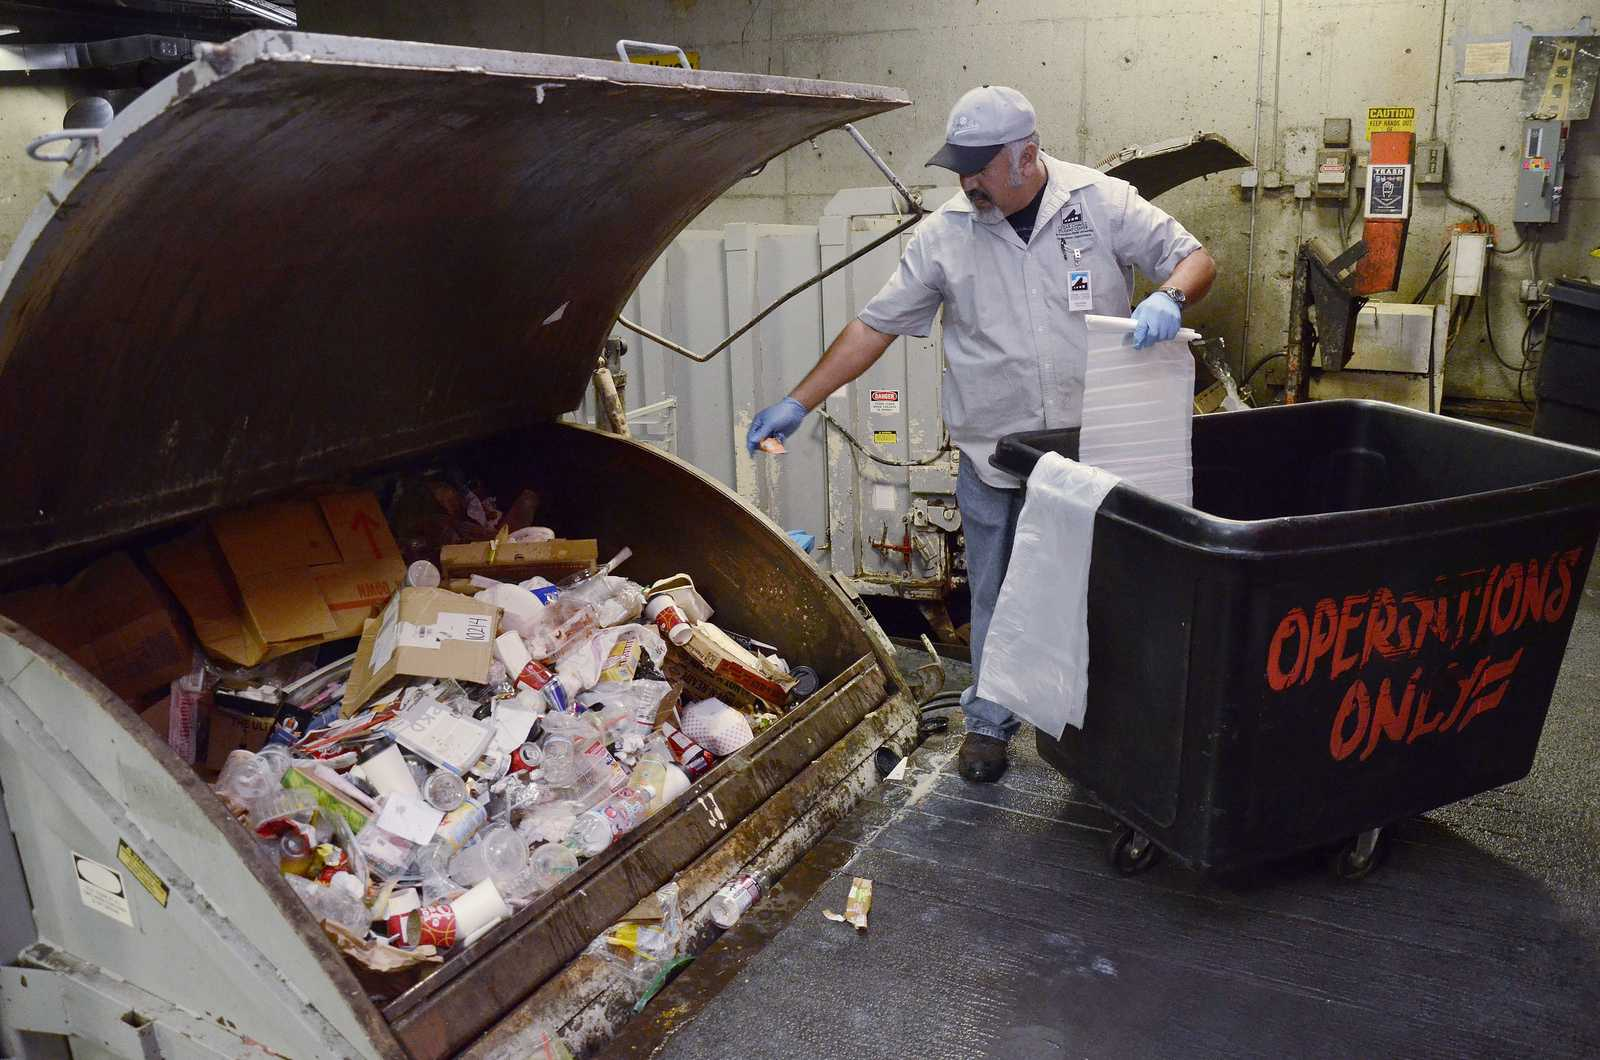 Agustin Cazares, who has been working at SF State for 33 years, empties the compost, recycling and waste beneath the Cesar Chavez Student Center in a zero waste effort on Tuesday, Sept. 3, 2013. Photo by Virginia Tieman / Xpress